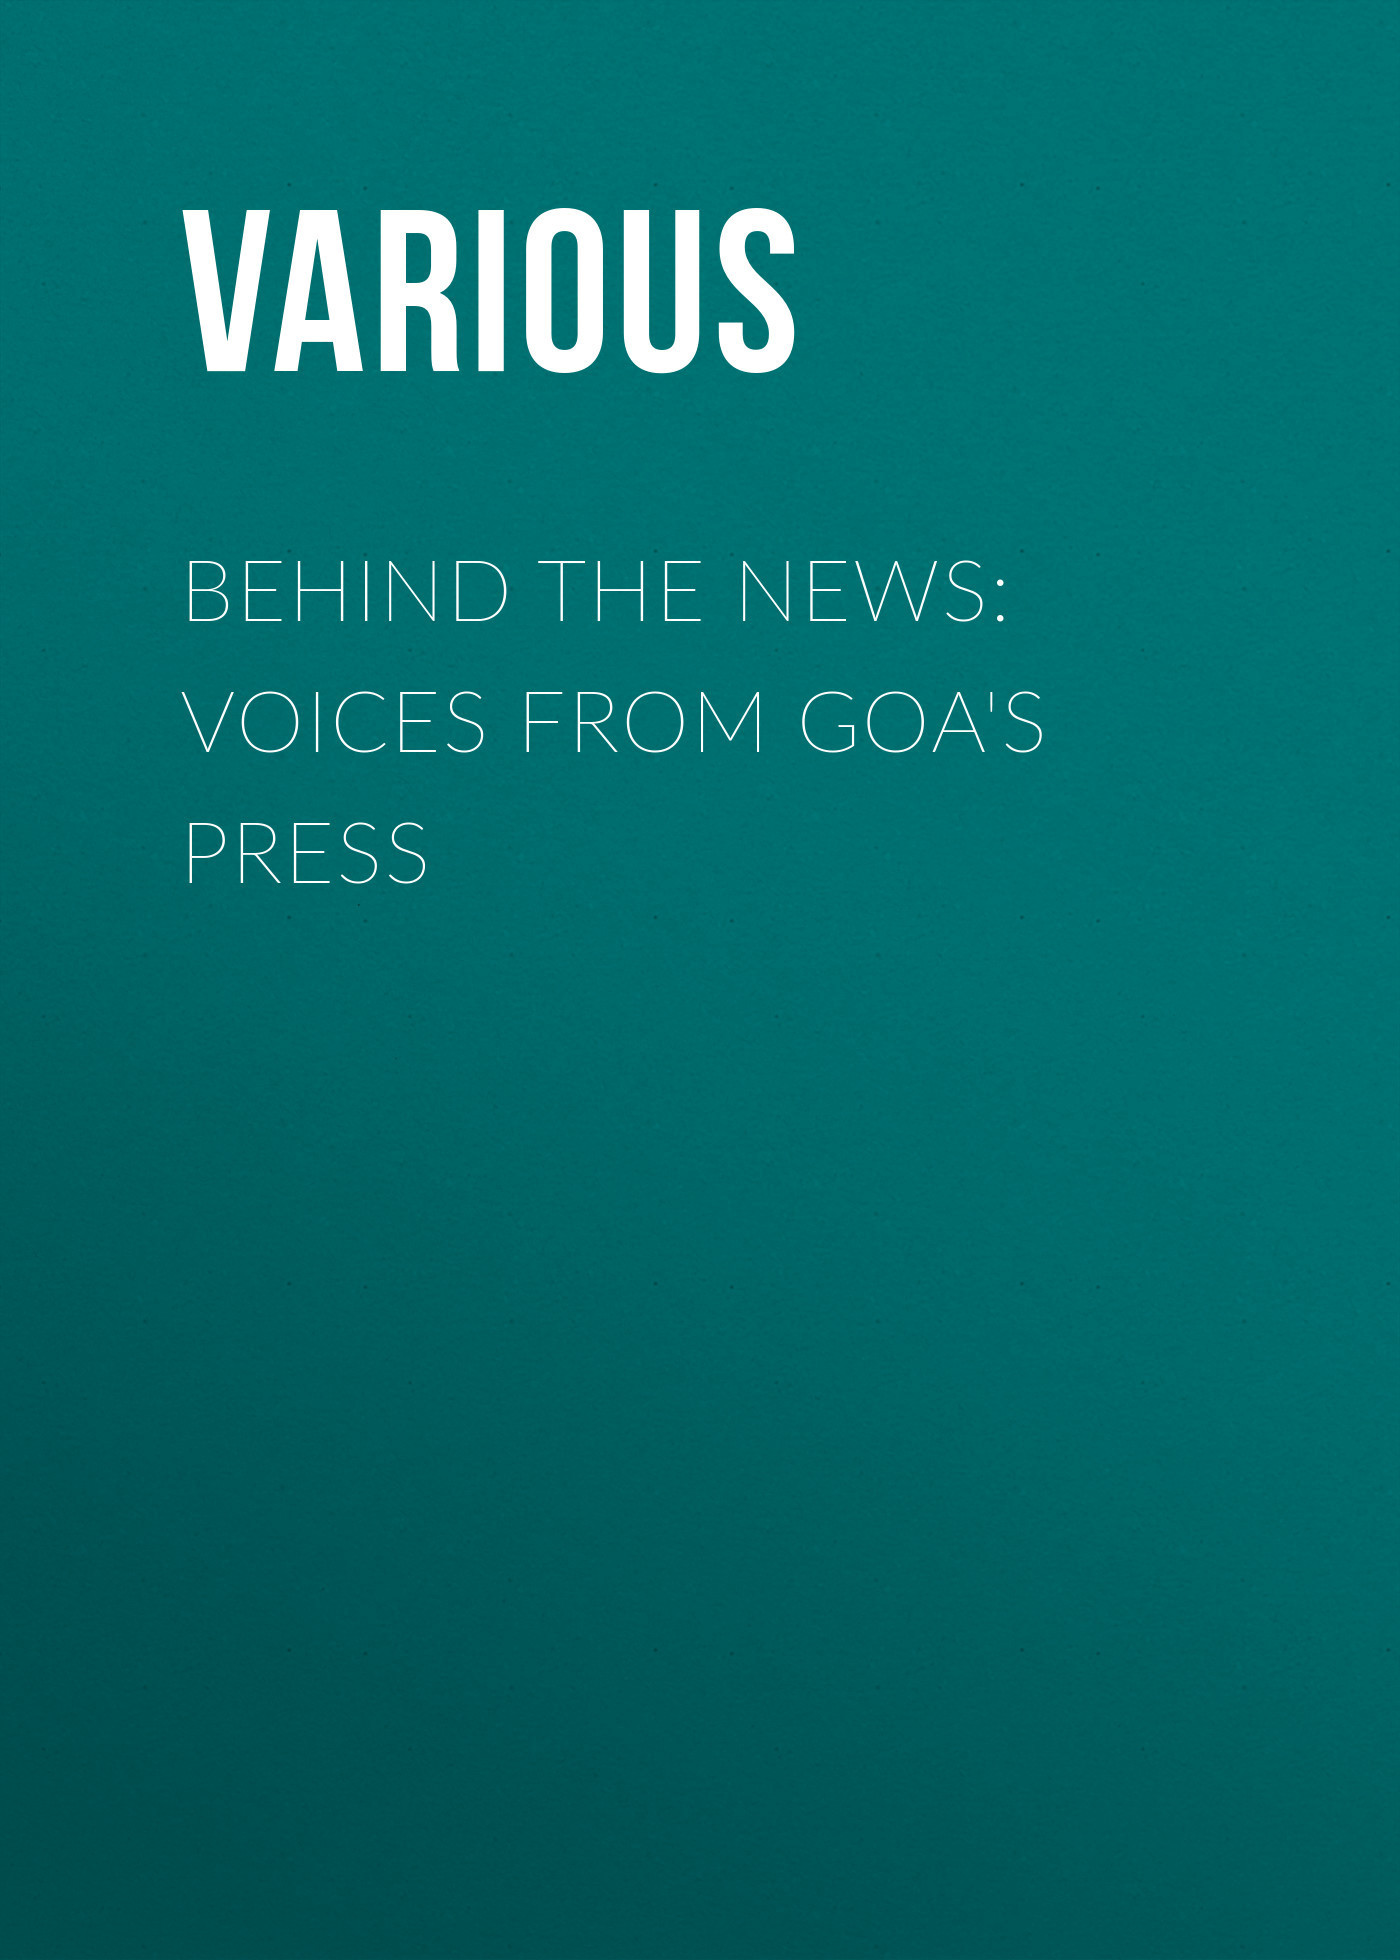 Various Behind the News: Voices from Goa's Press indigenous voices